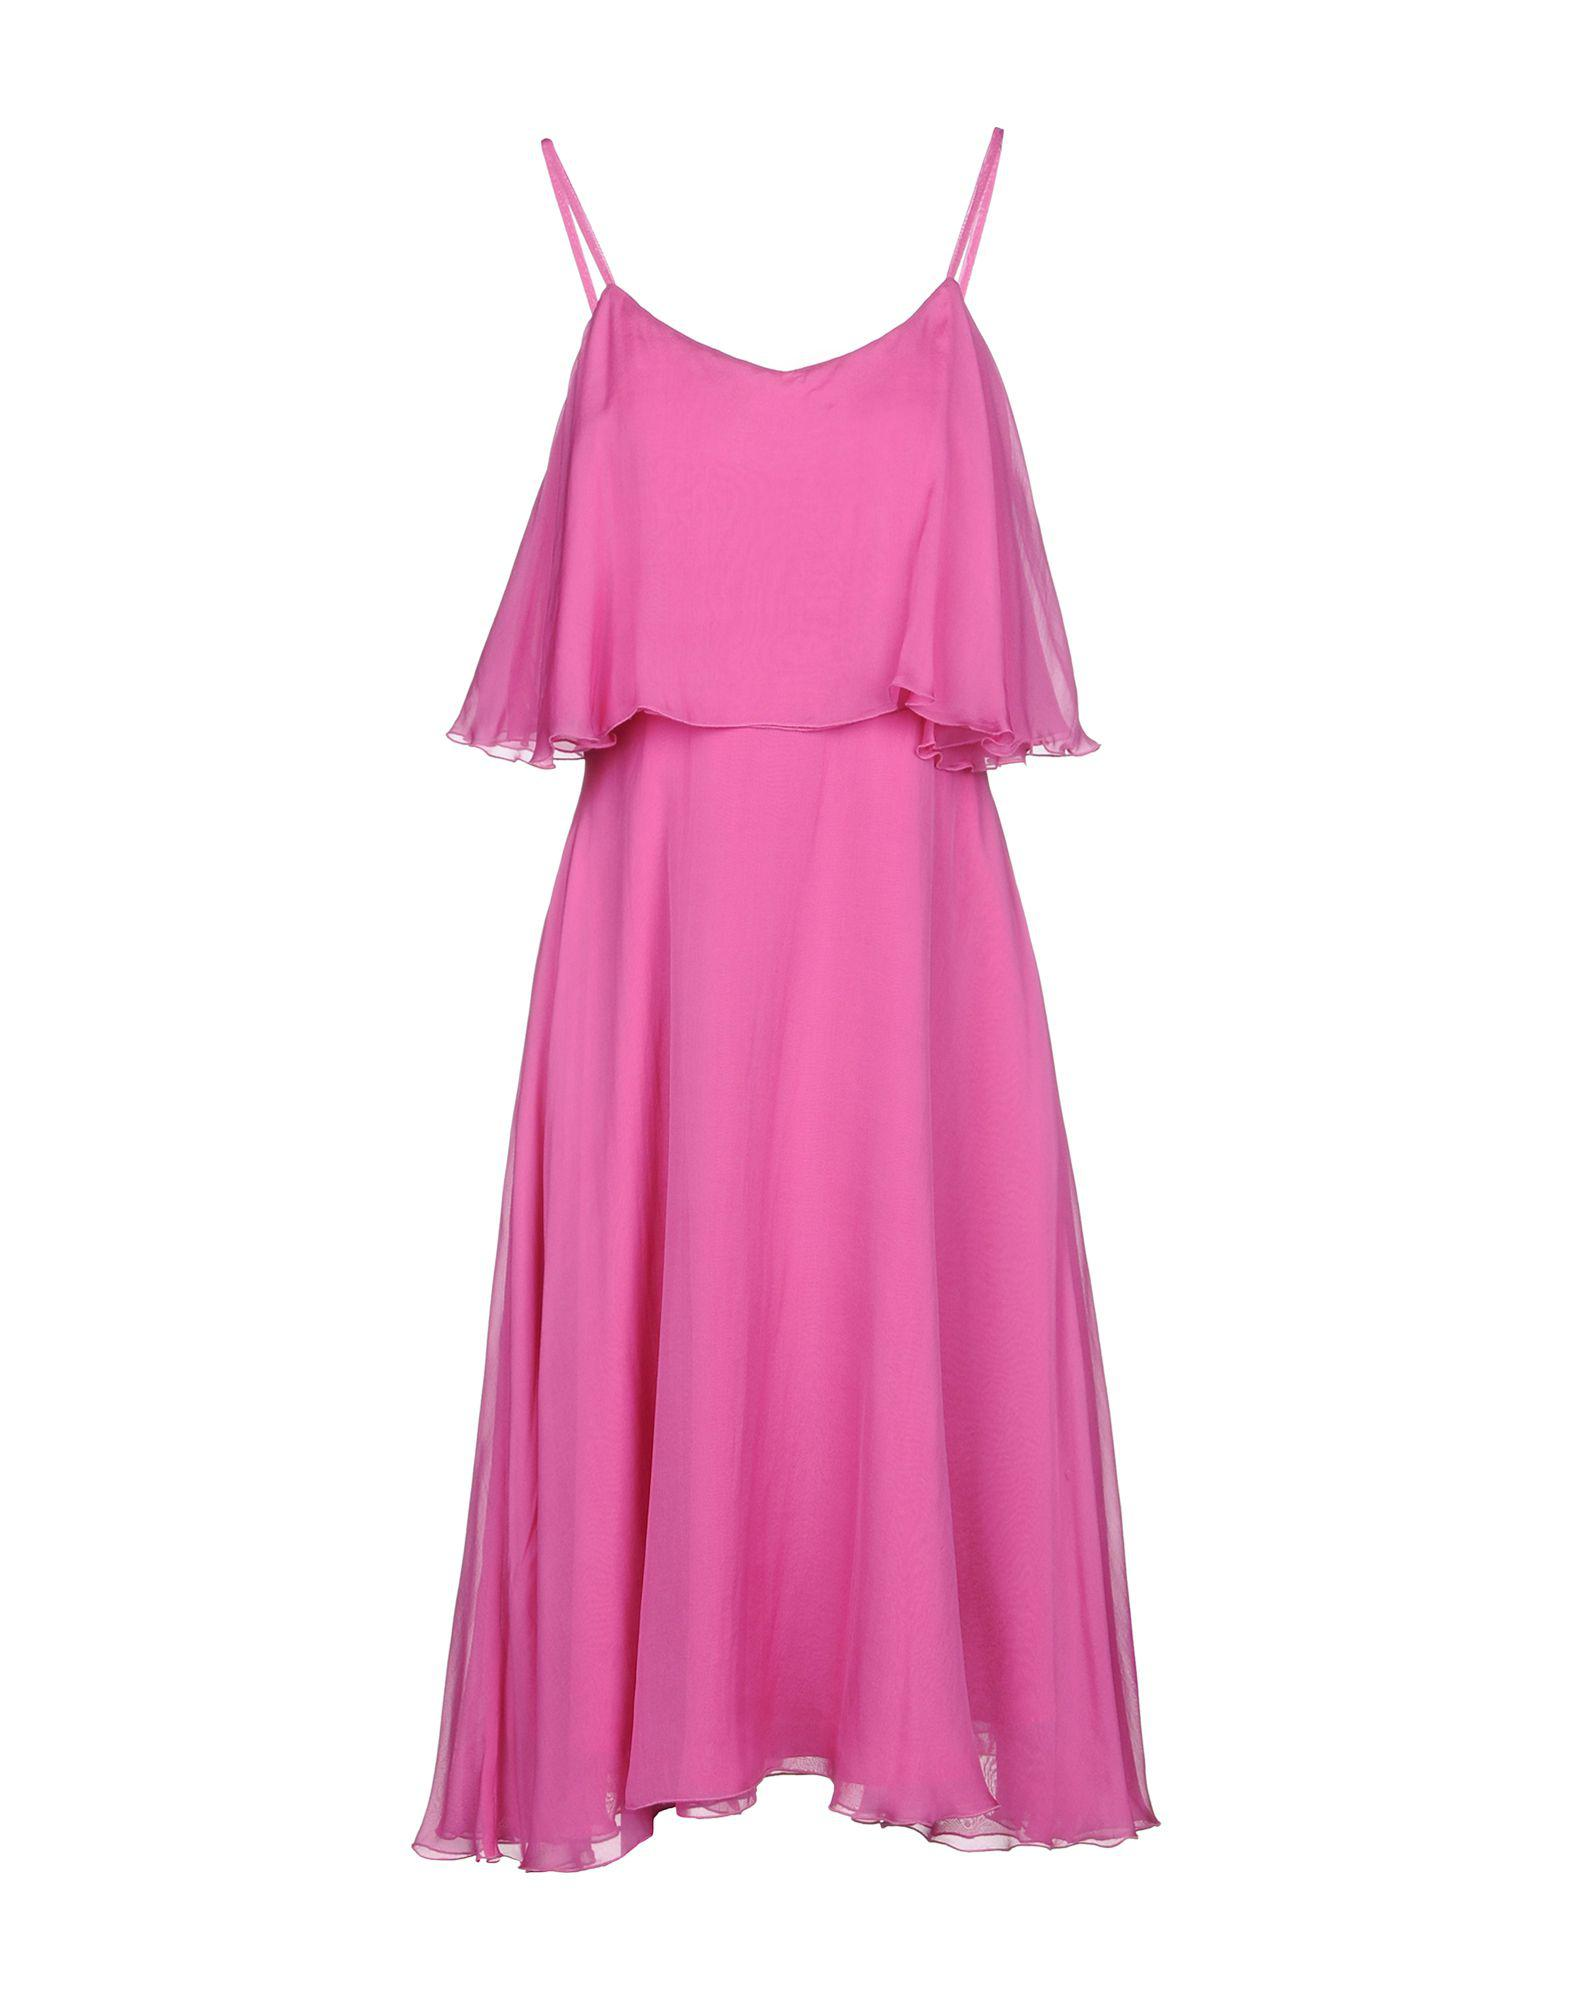 DRESSES - Knee-length dresses Space Style Concept Outlet Newest f6XPtTQsX